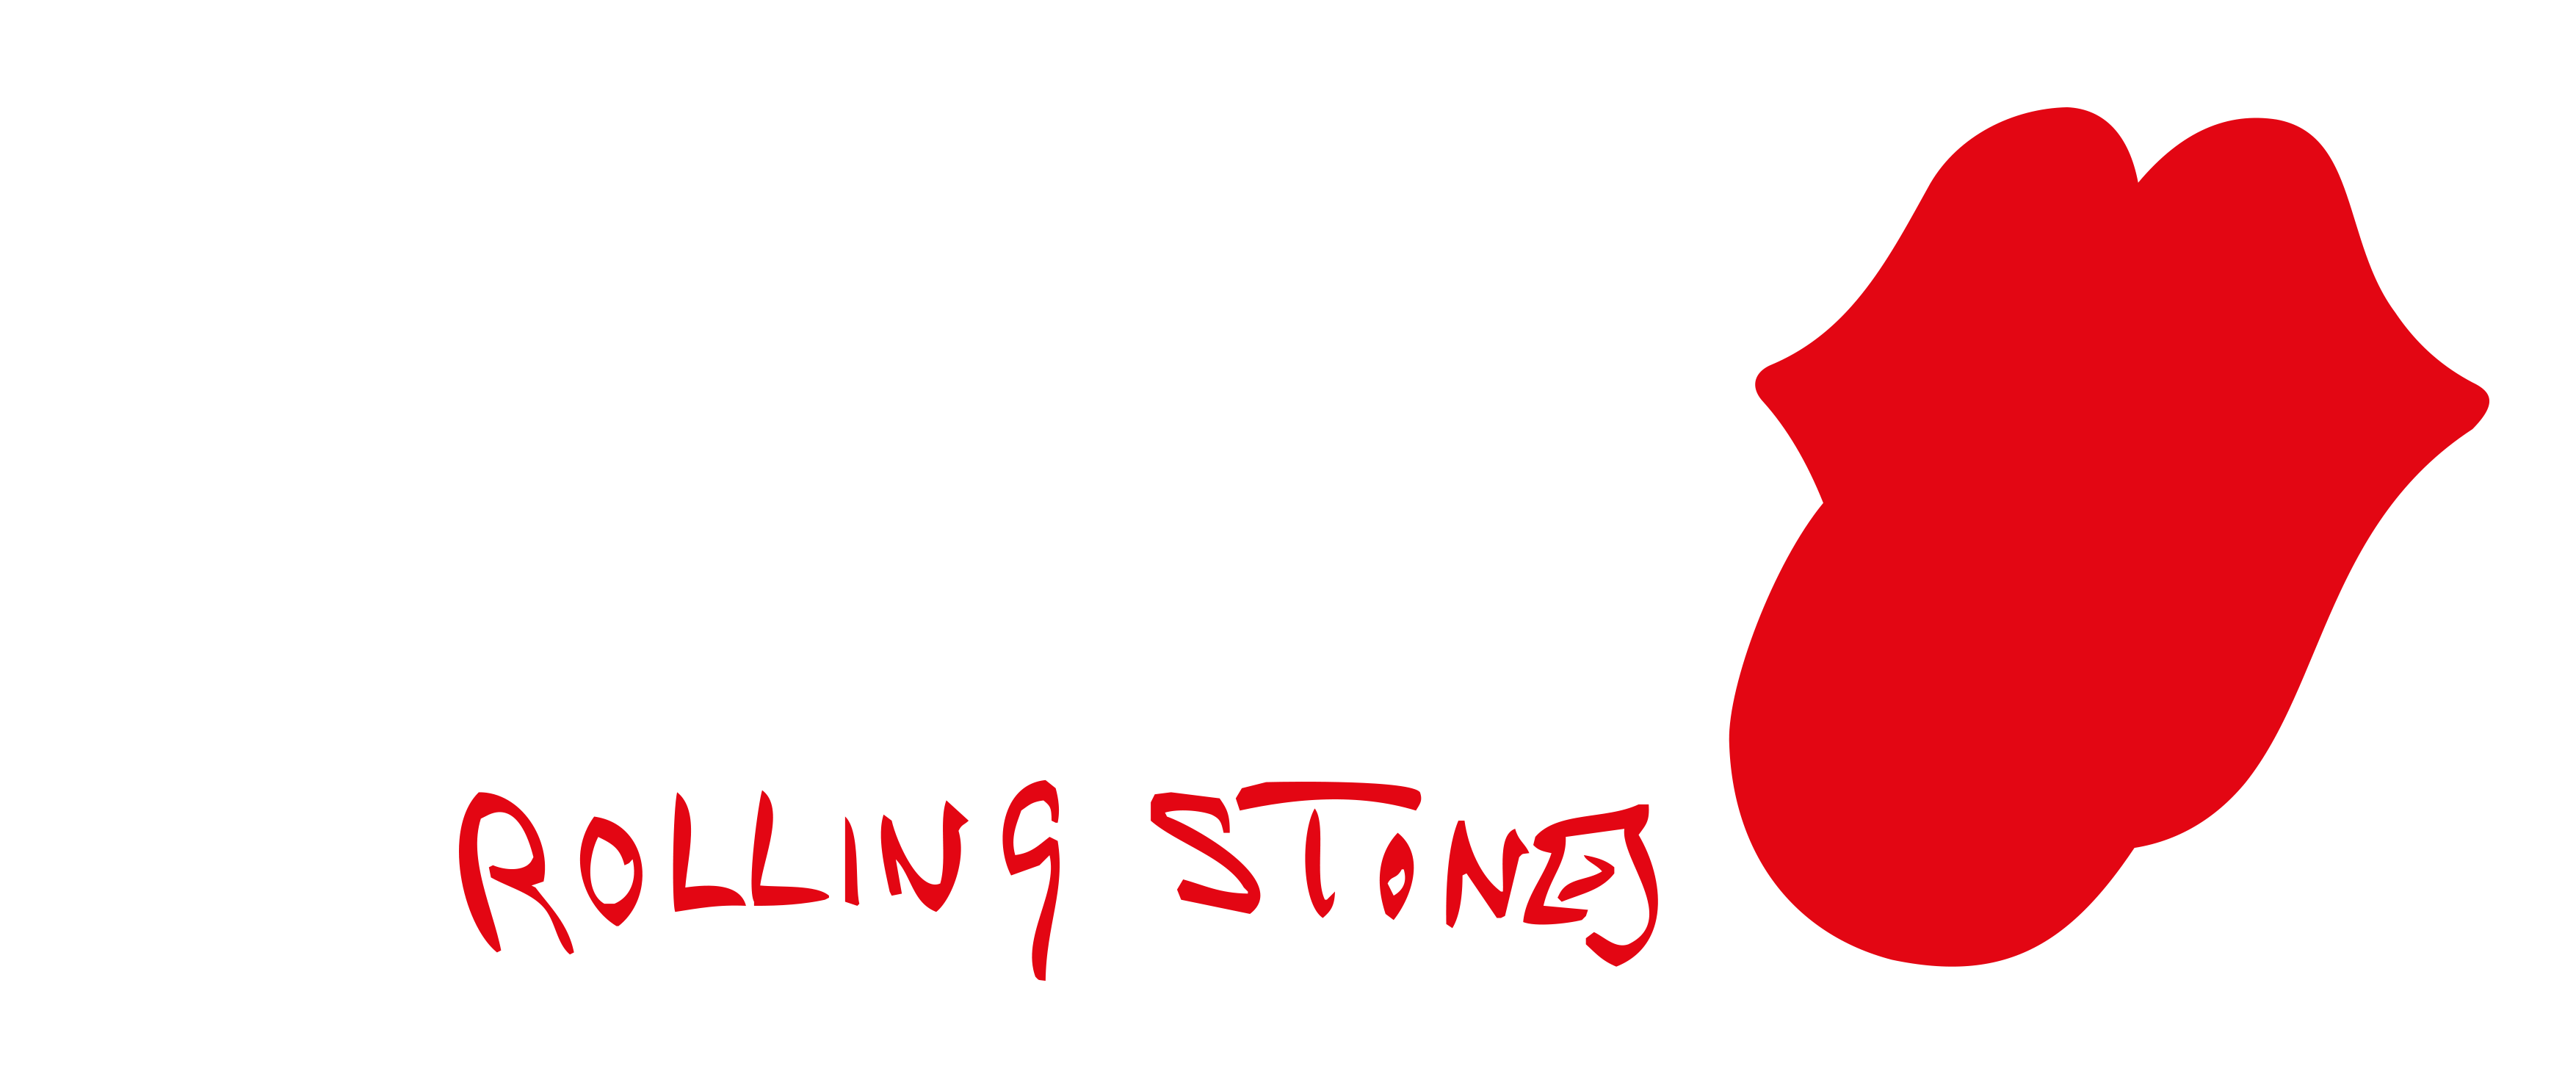 Exile Rolling Stones